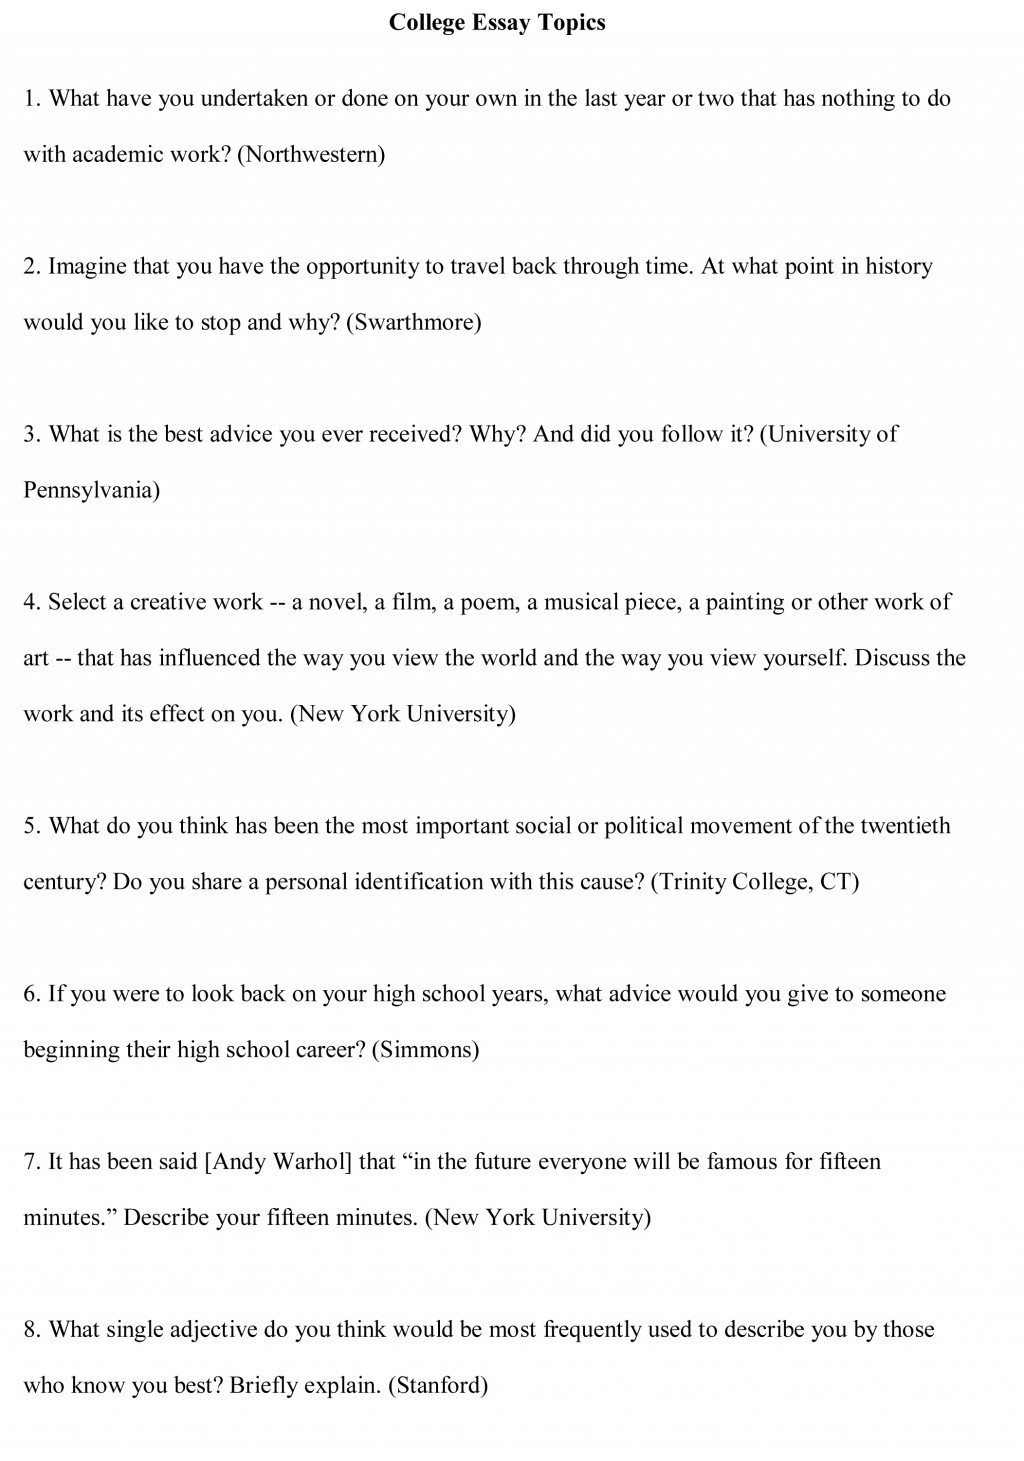 004 College Essay Topics Free Sample1 Good For Essays Top Research Best Prompts Large